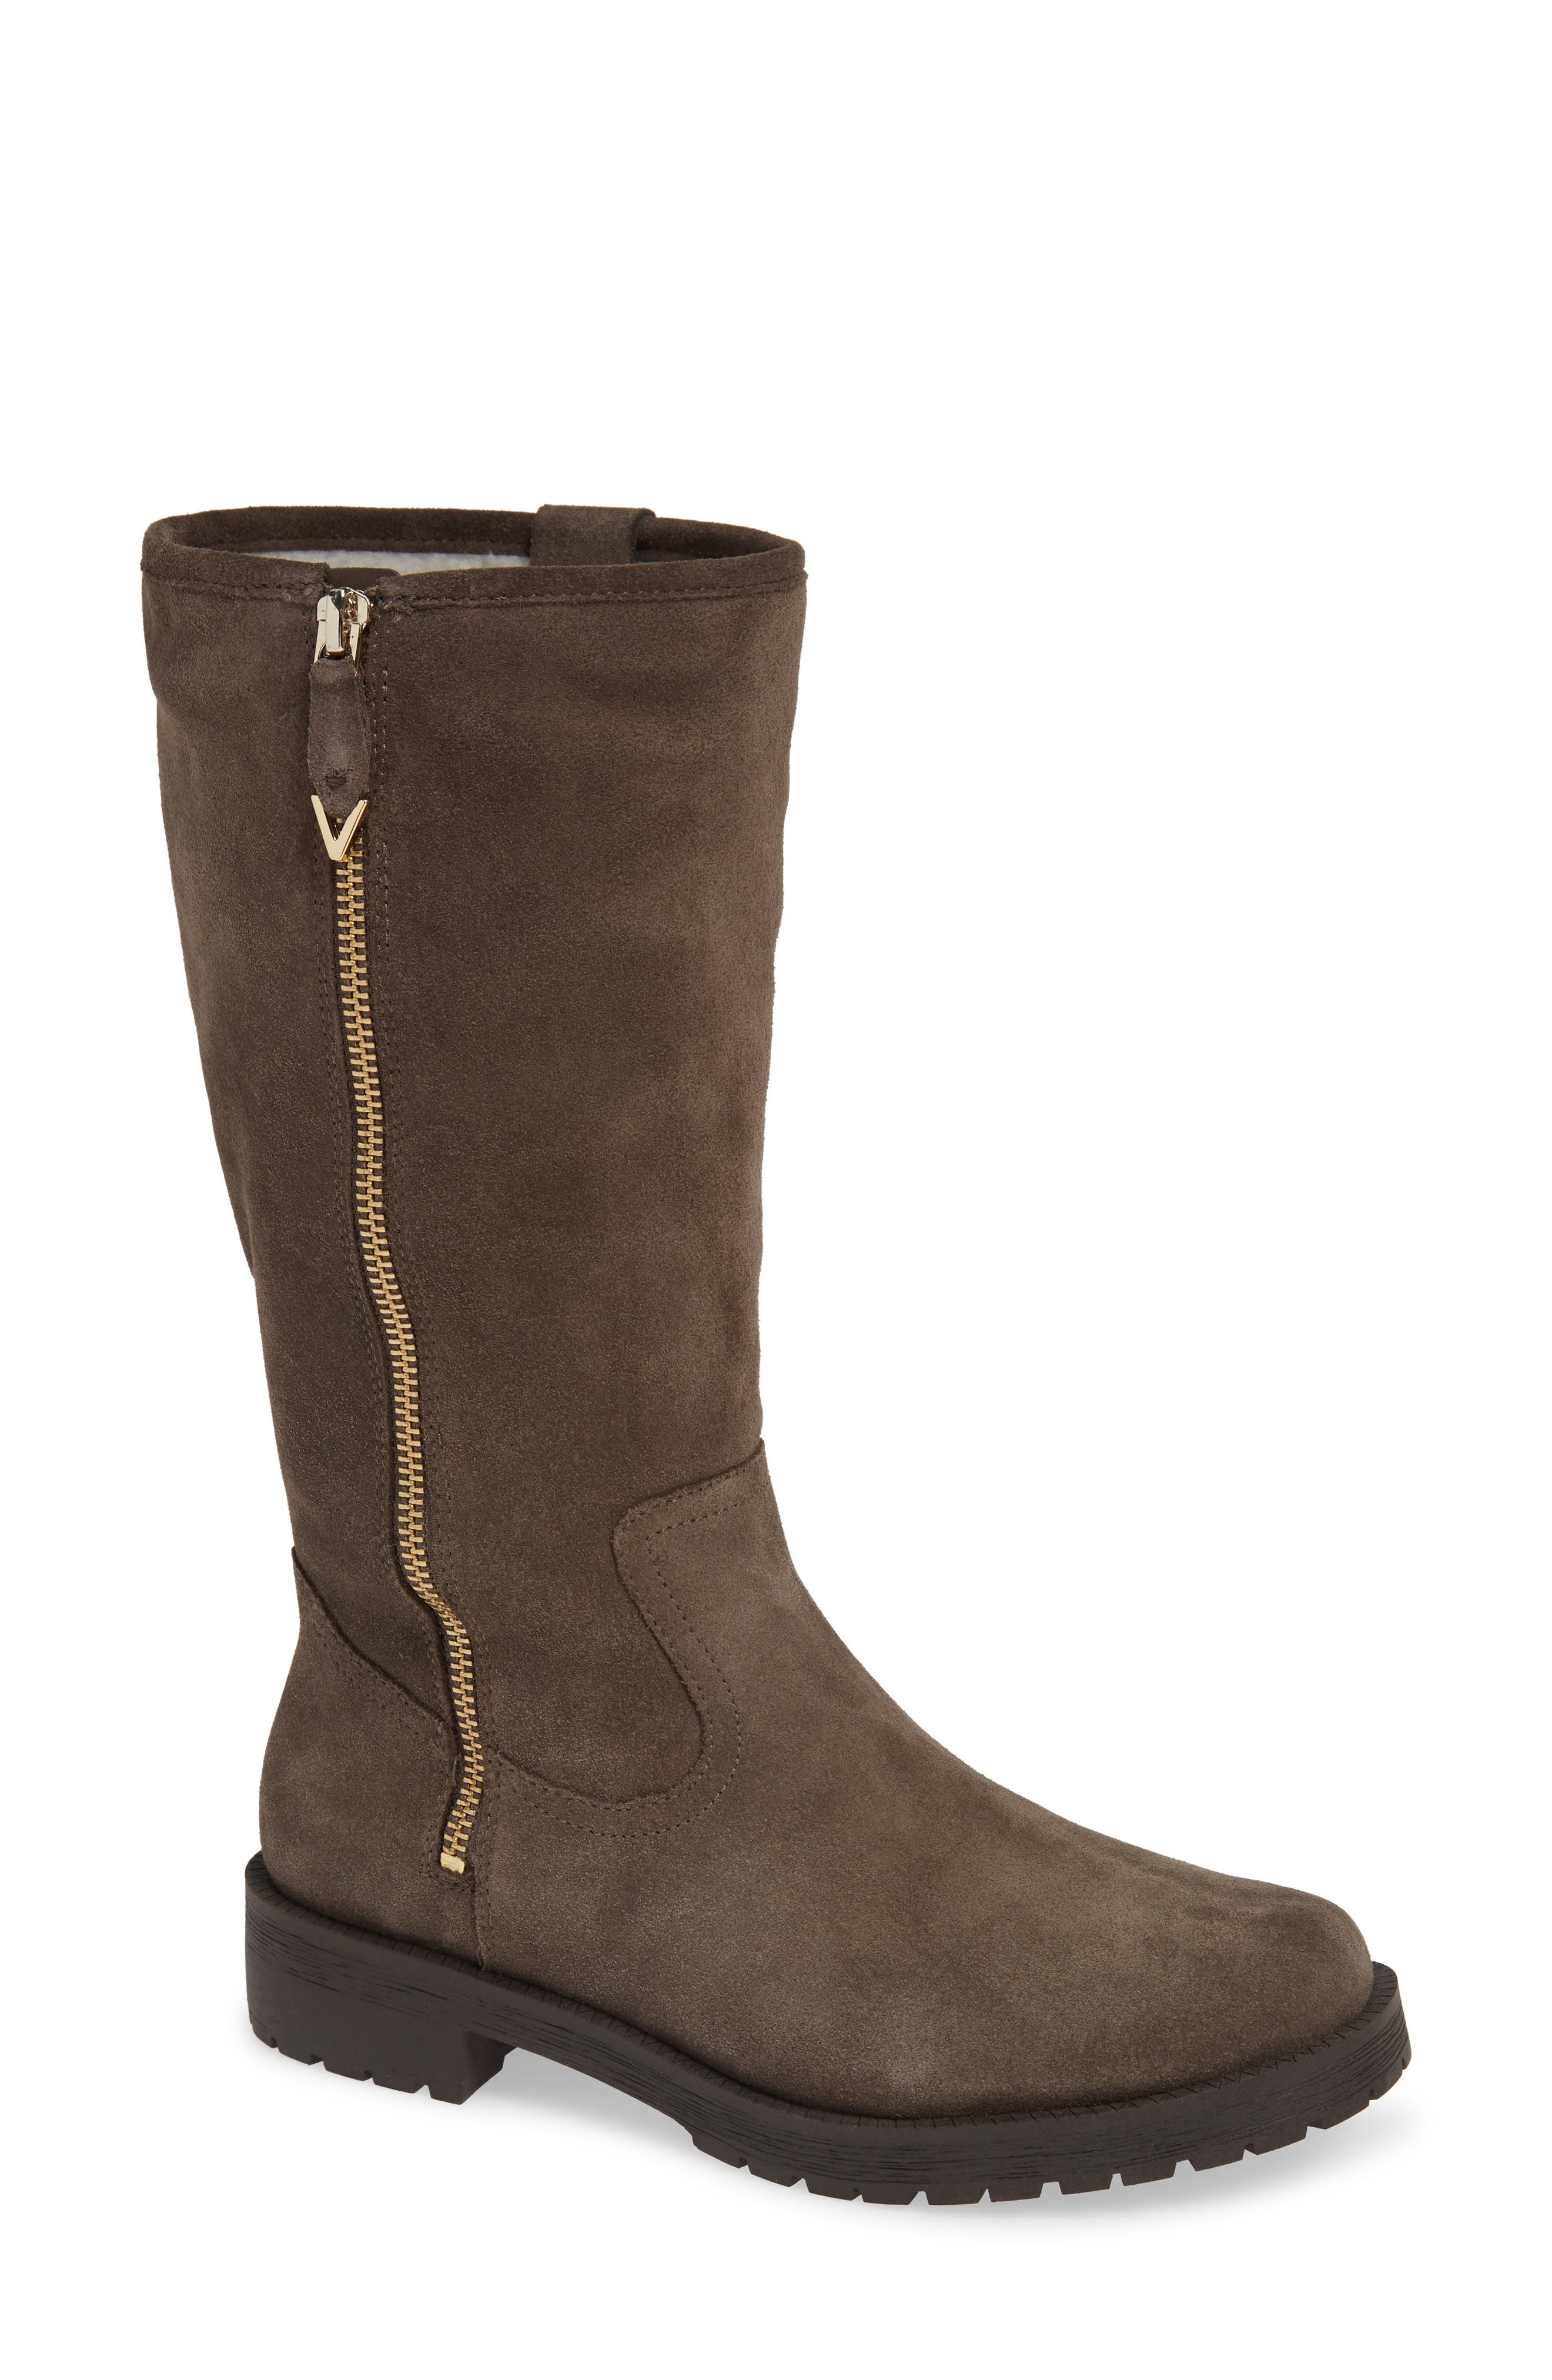 VIONIC Mica Boot, Main, color, GREIGE SUEDE